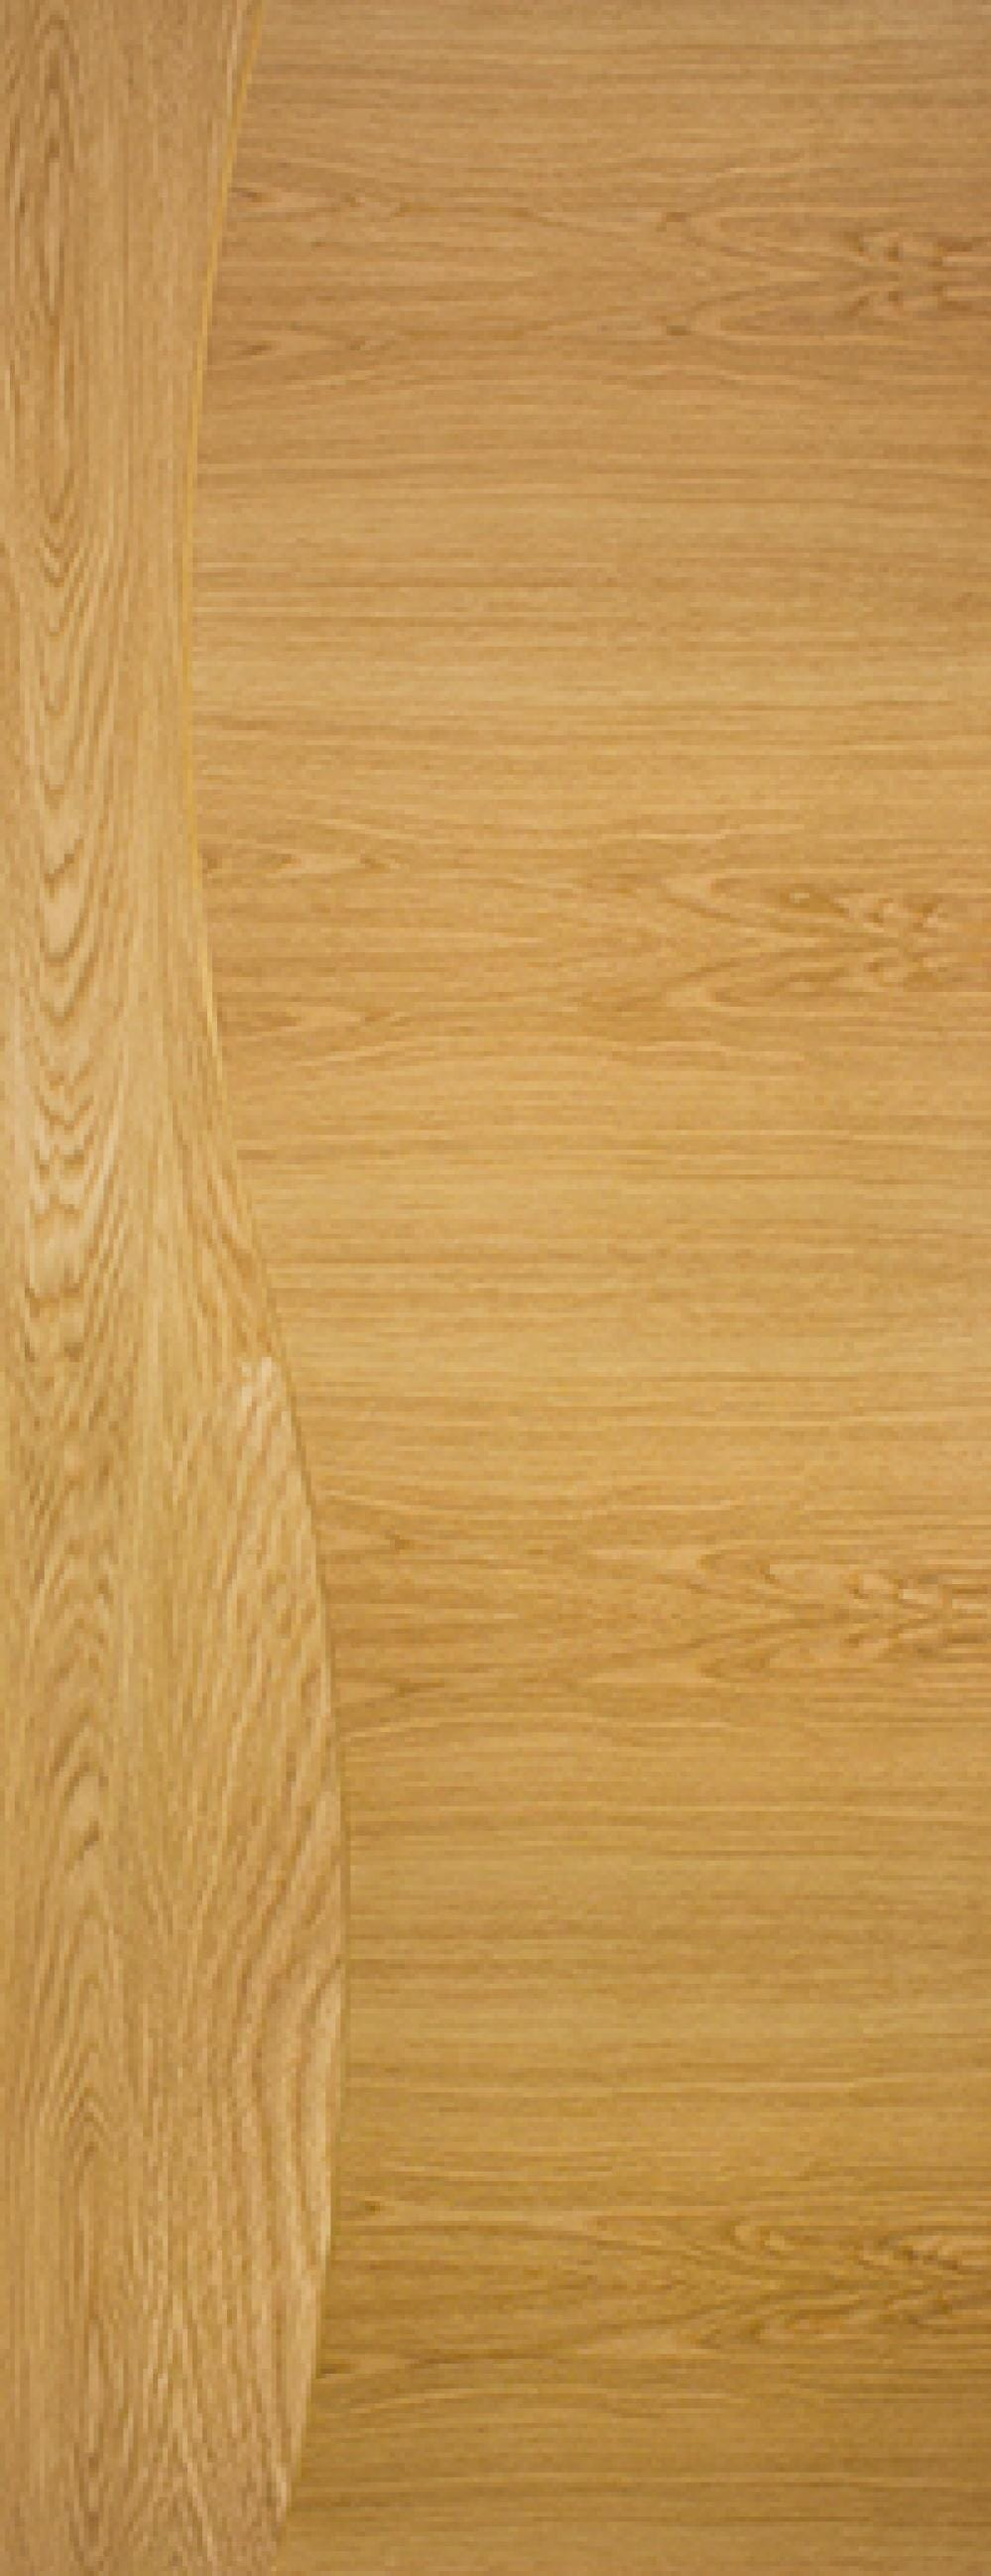 Cadiz Oak - Prefinished Image